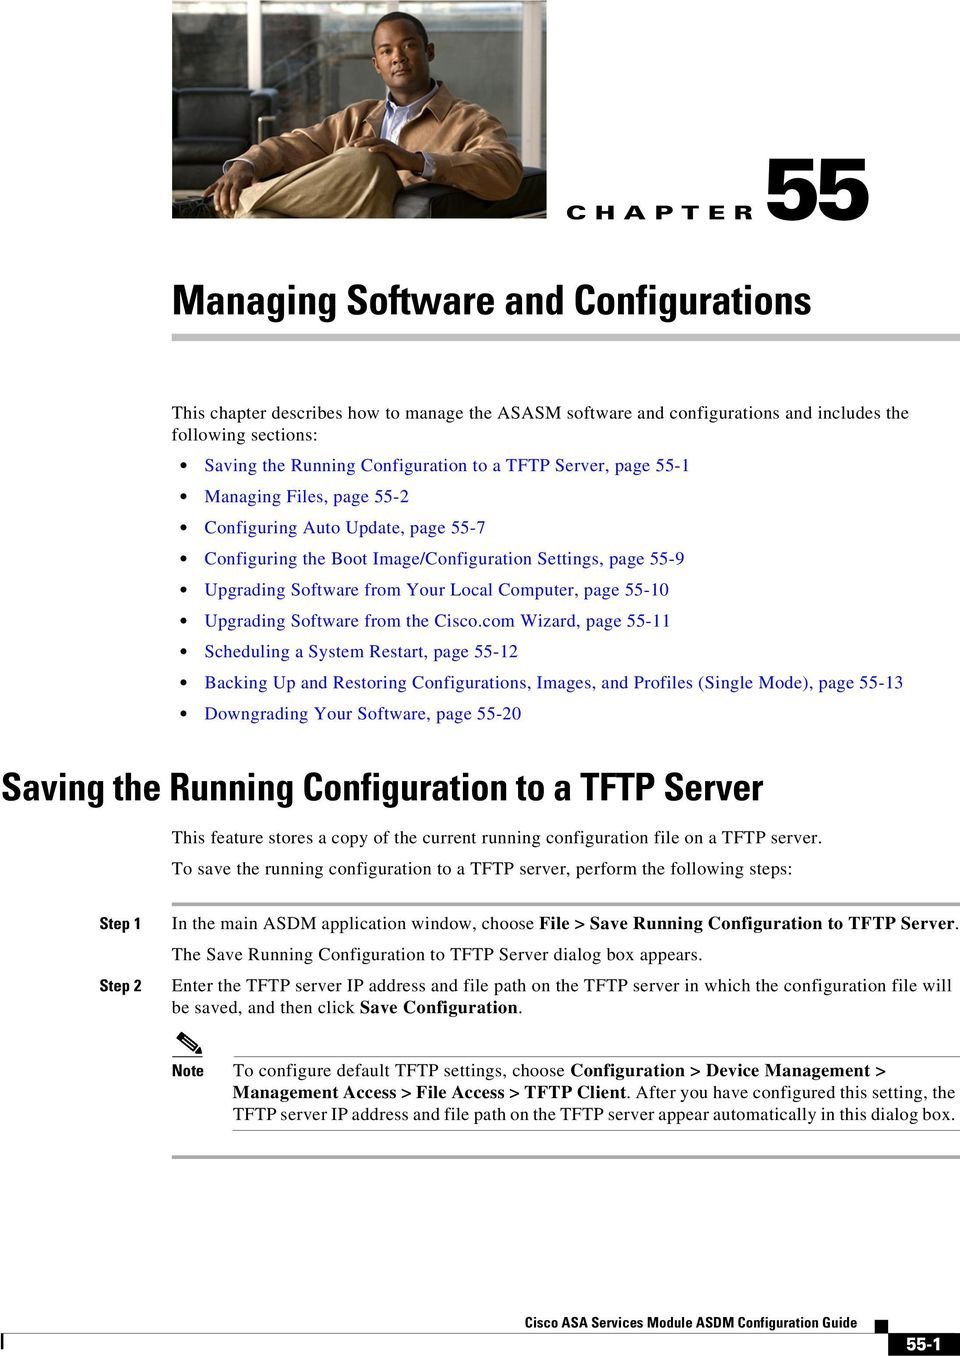 com Wizard, page 55-11 Scheduling a System Restart, page 55-12 Backing Up and Restoring Configurations, Images, and Profiles (Single Mode), page 55-13 Downgrading Your Software, page 55-20 Saving the